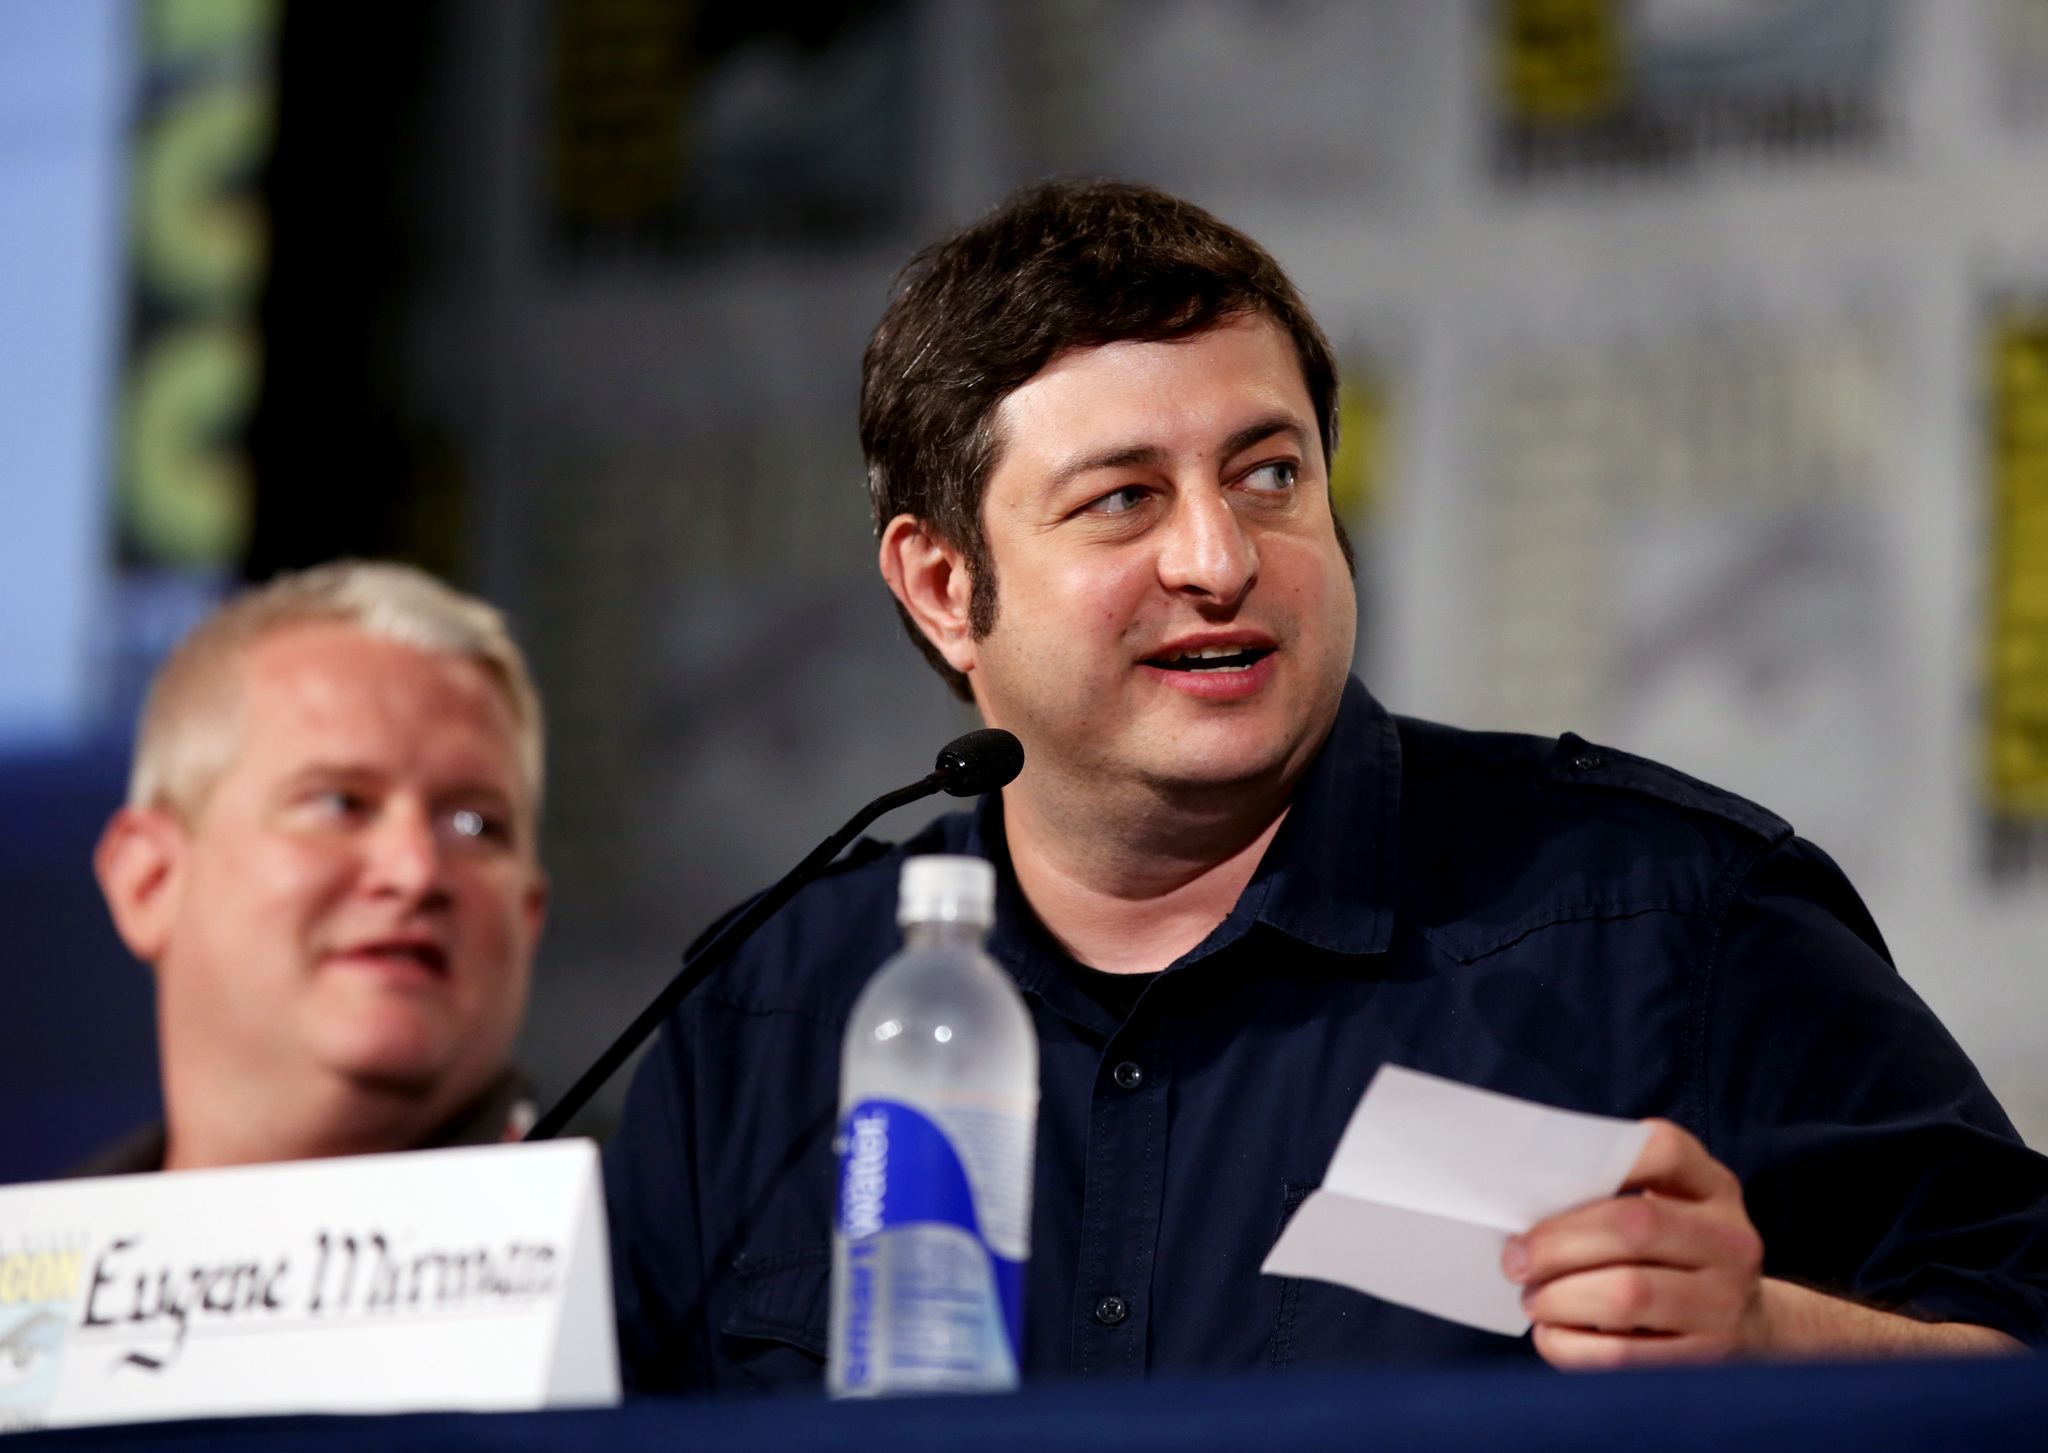 Eugene Mirman at an event for Archer (2009)